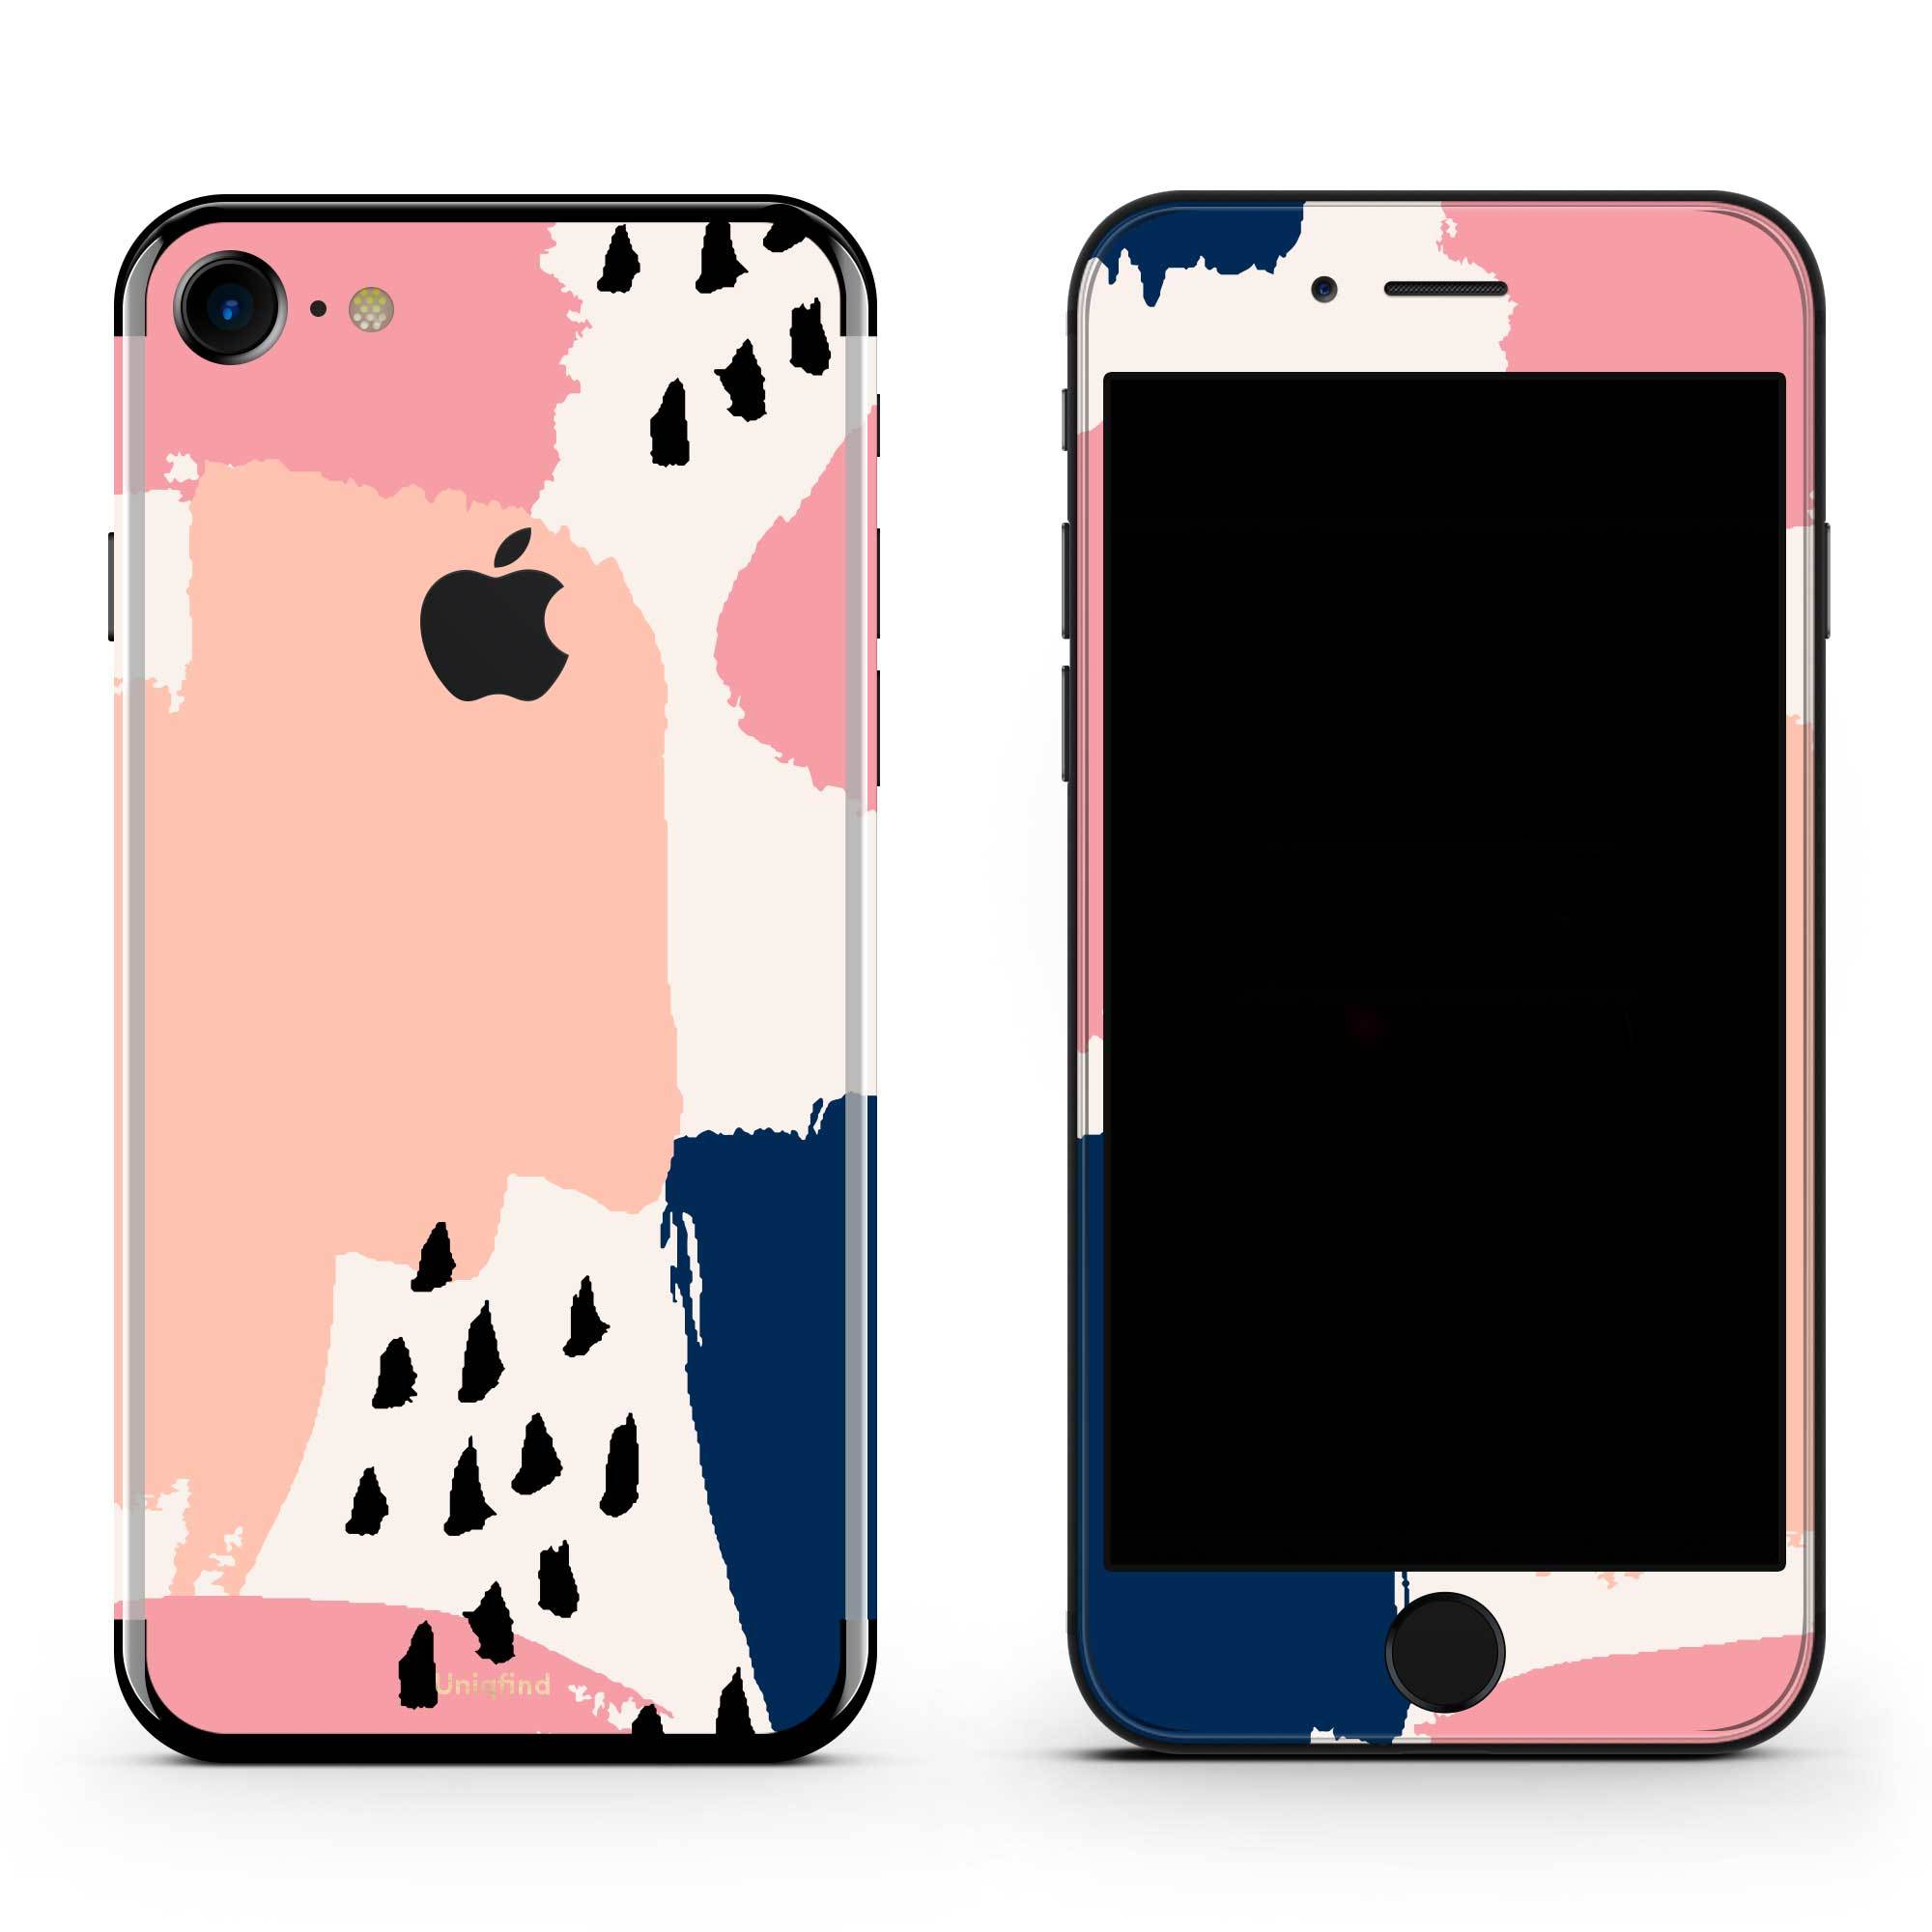 Miami Vice iPhone 8 Plus Skin + Case